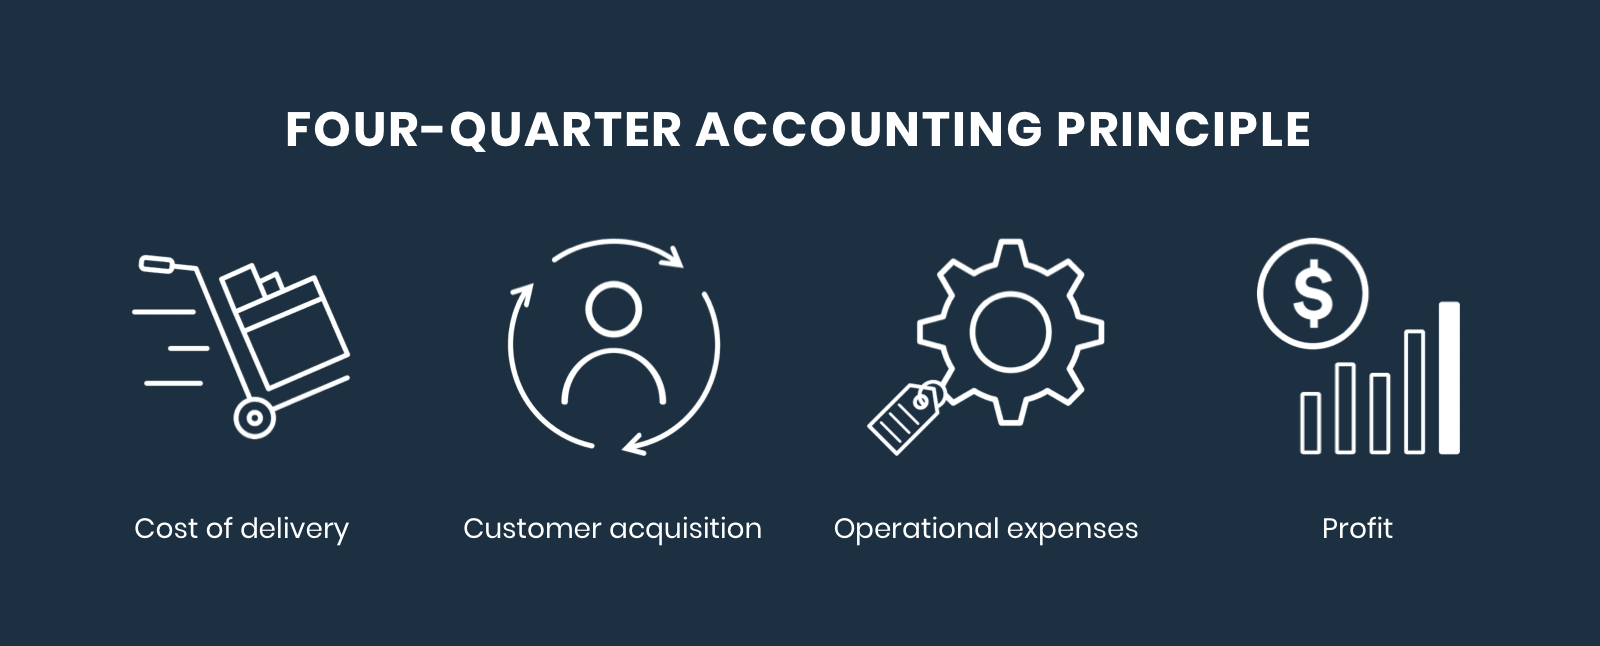 four-quarter accounting principle: cost of delivery, customer acquisition, operational expenses, and profit